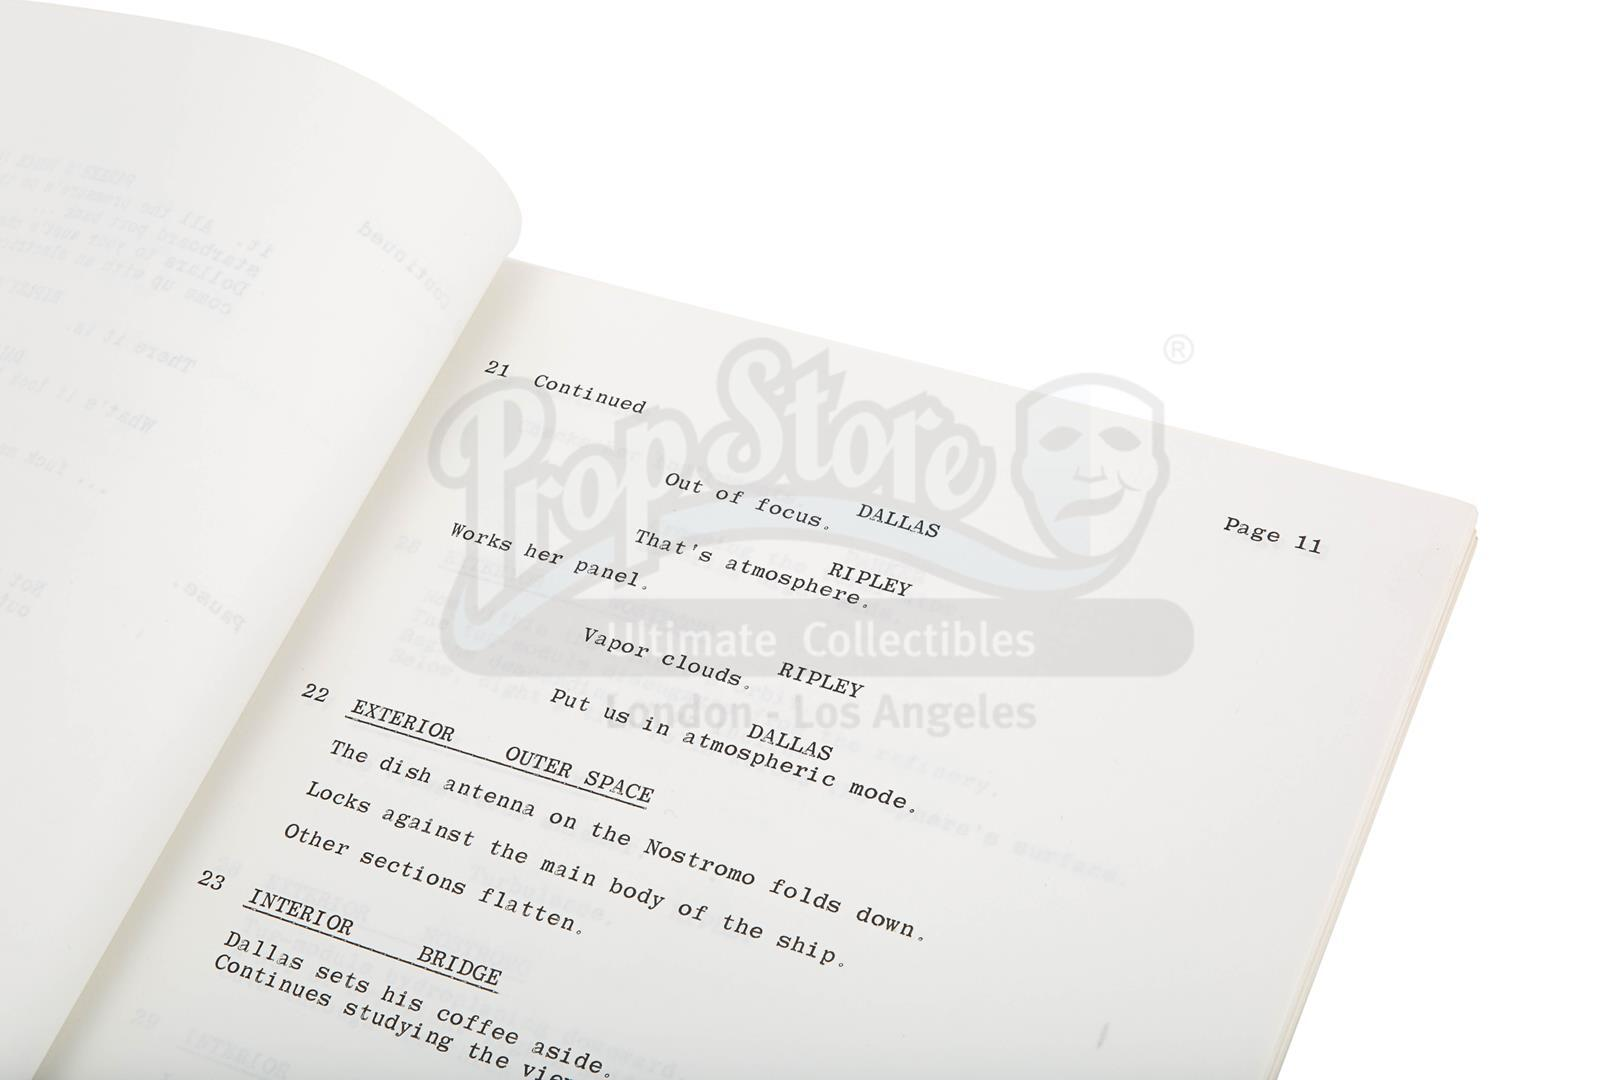 ALIEN (1979) - Revised Production-Used Script - Image 8 of 8